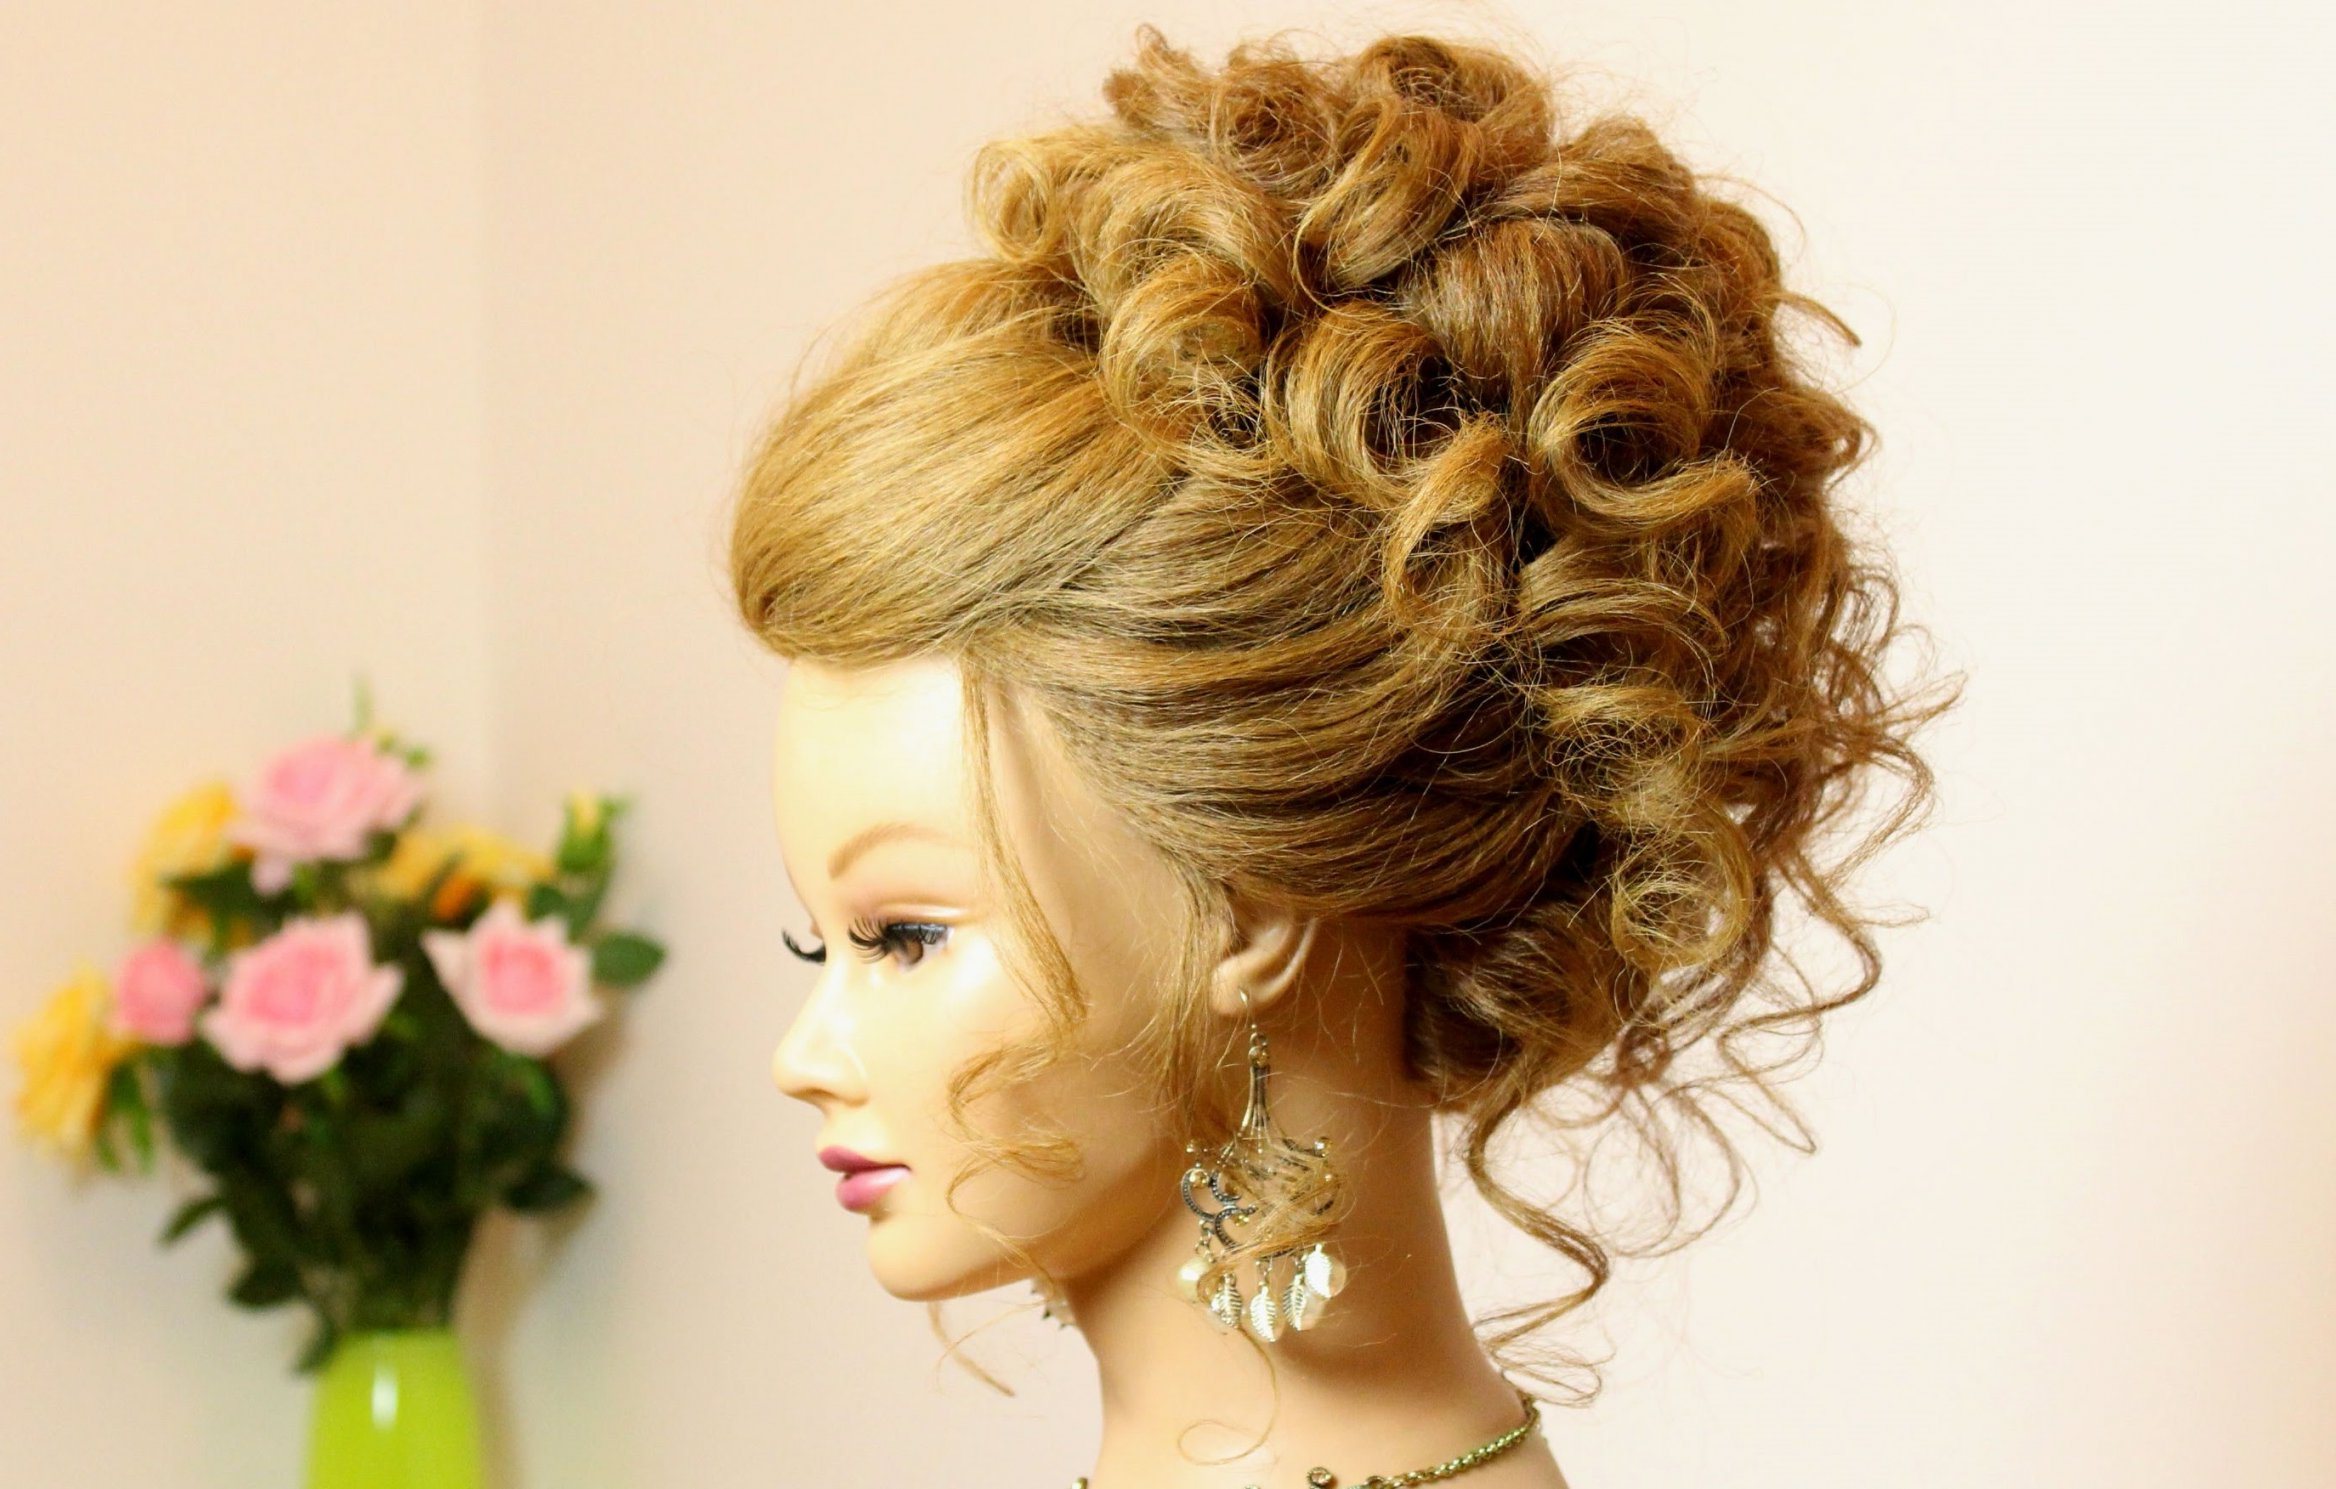 Most Current Curly Medium Hairstyles For Prom Pertaining To Curly Hairstyle For Long Medium Hair. Wedding Prom Updo (View 8 of 20)